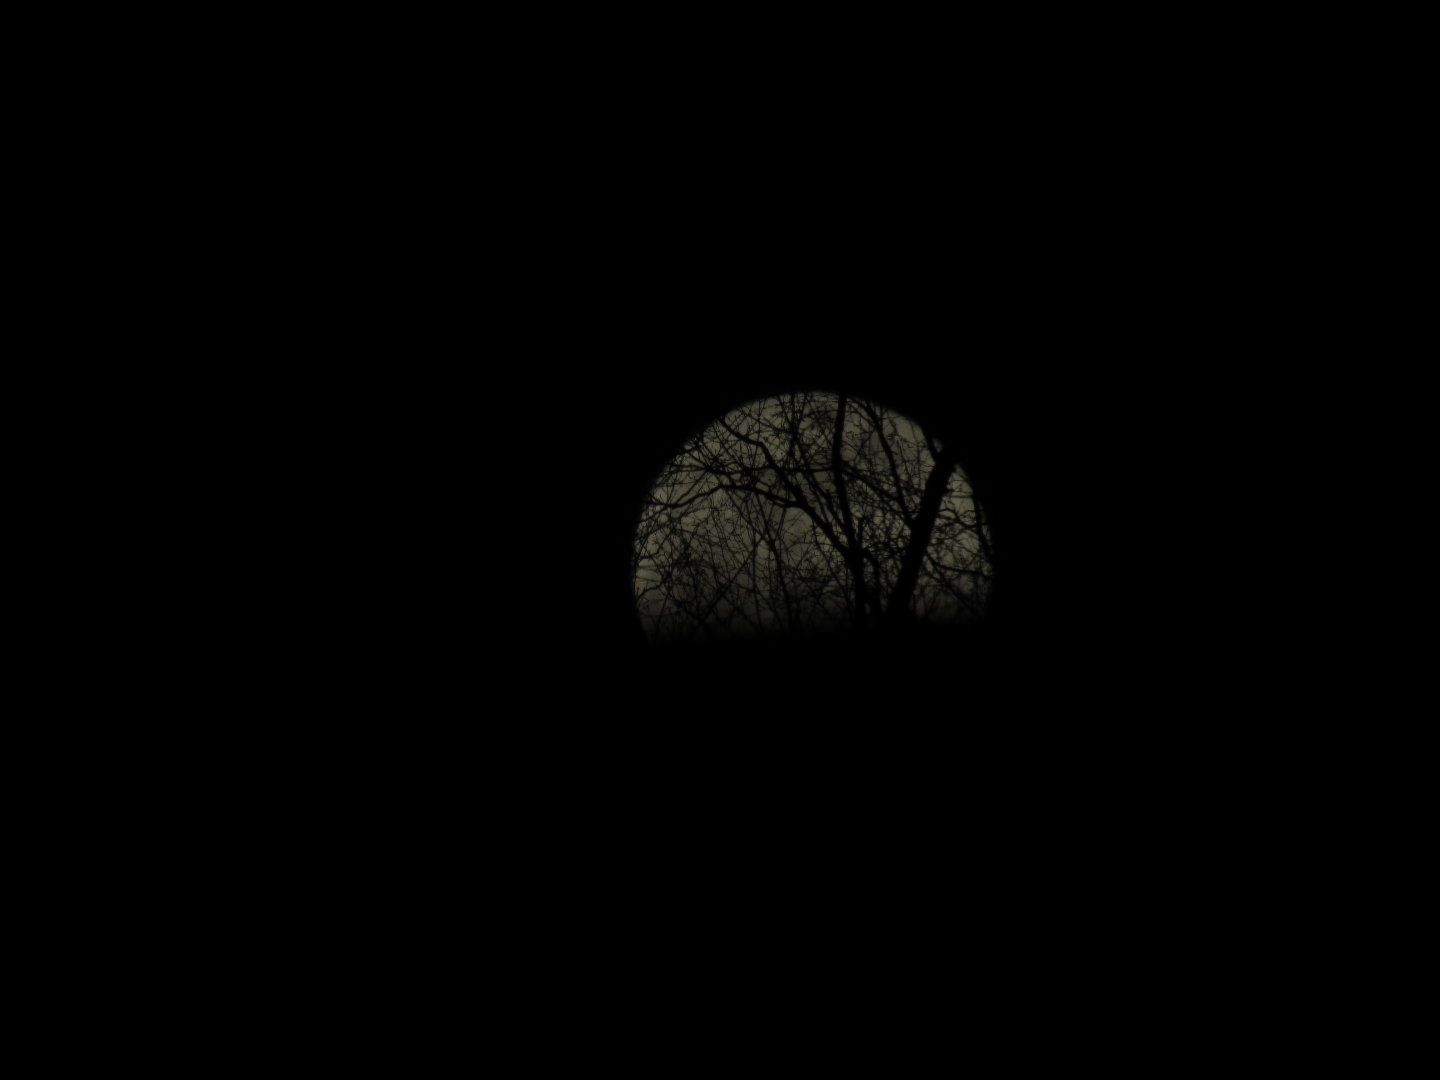 March Full Worm Moon 2015